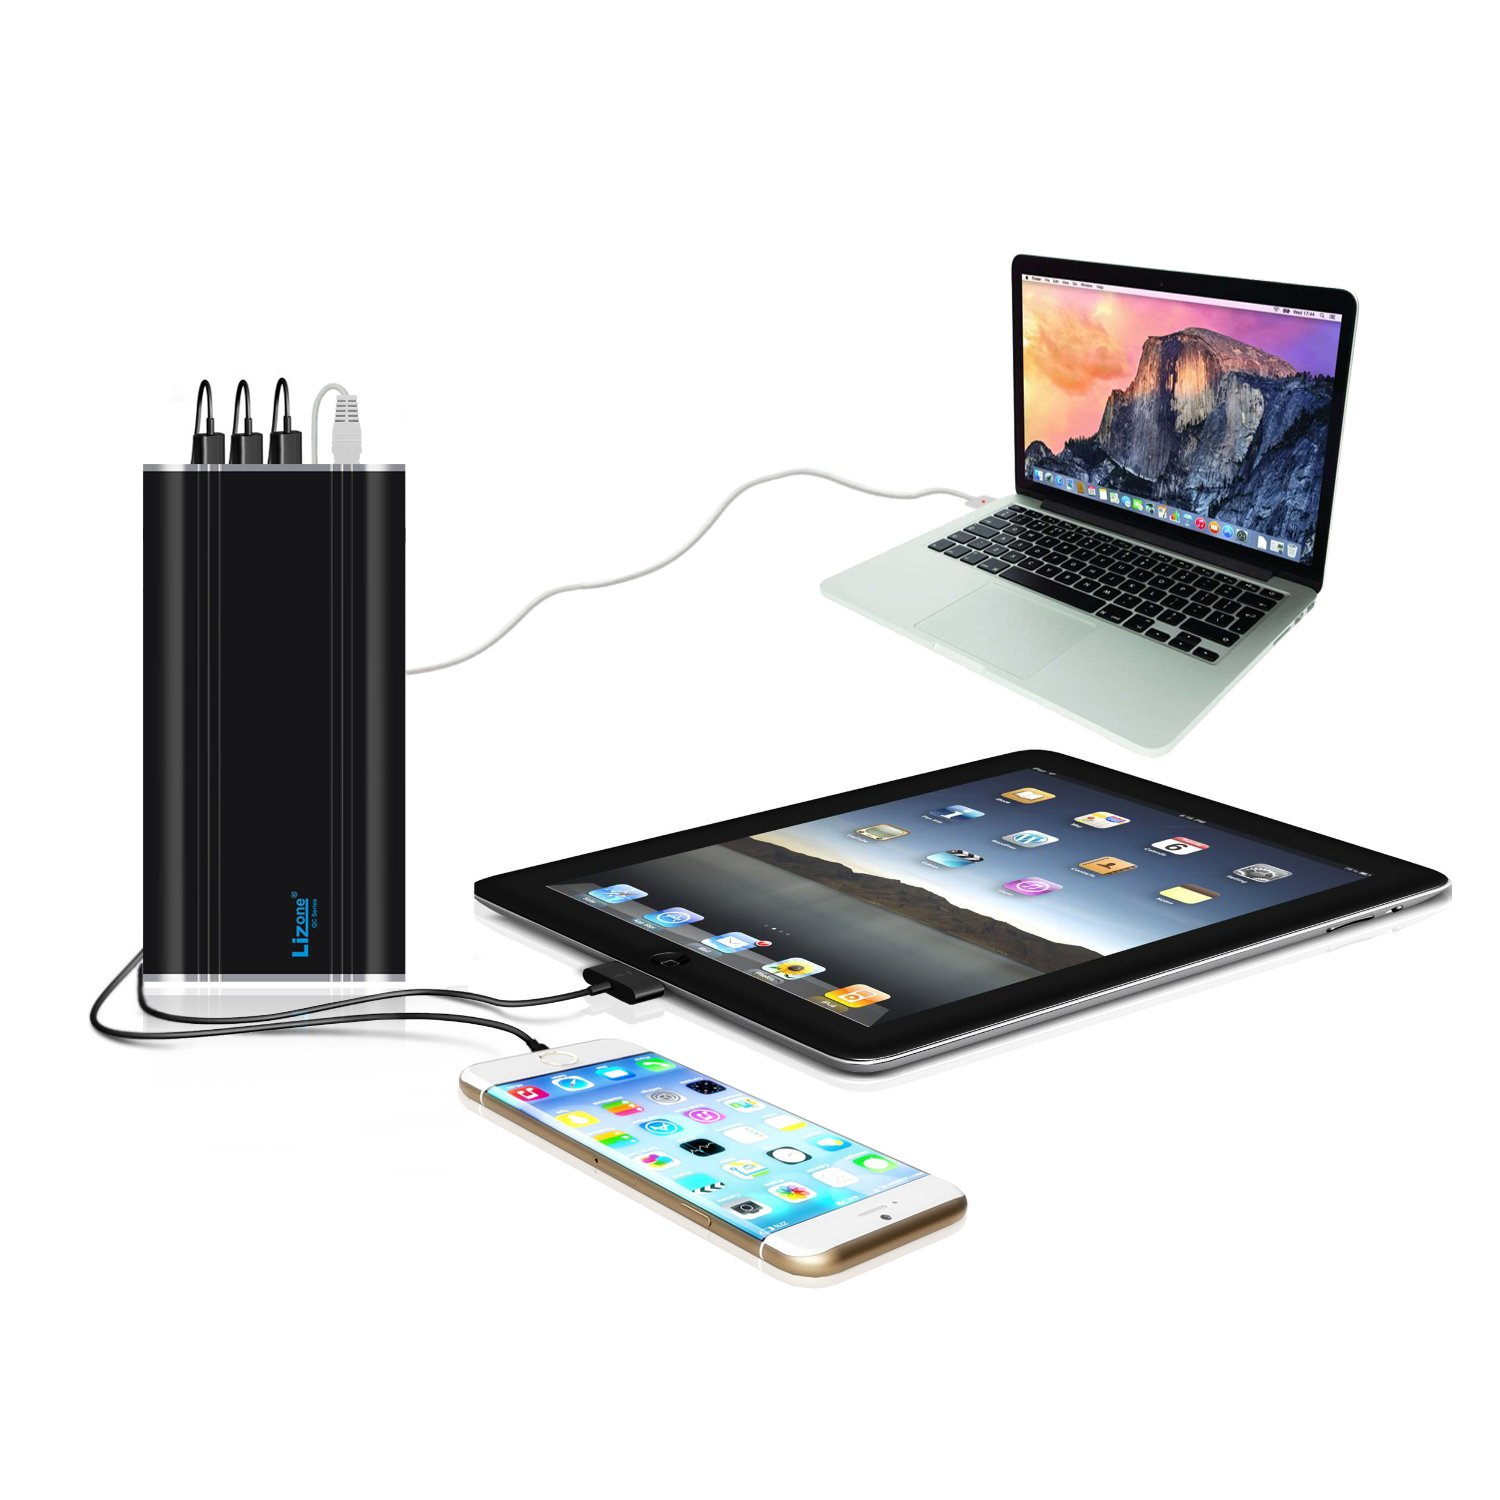 Lizone 35KmAh QC Portable Charger External Battery Power Bank for Apple Macbook Pro Macbook Air, USB Ports Quick Charge for iPad iPhone 7 6 6S Plus and more Tablets or Smartphones. by Lizone (Image #4)